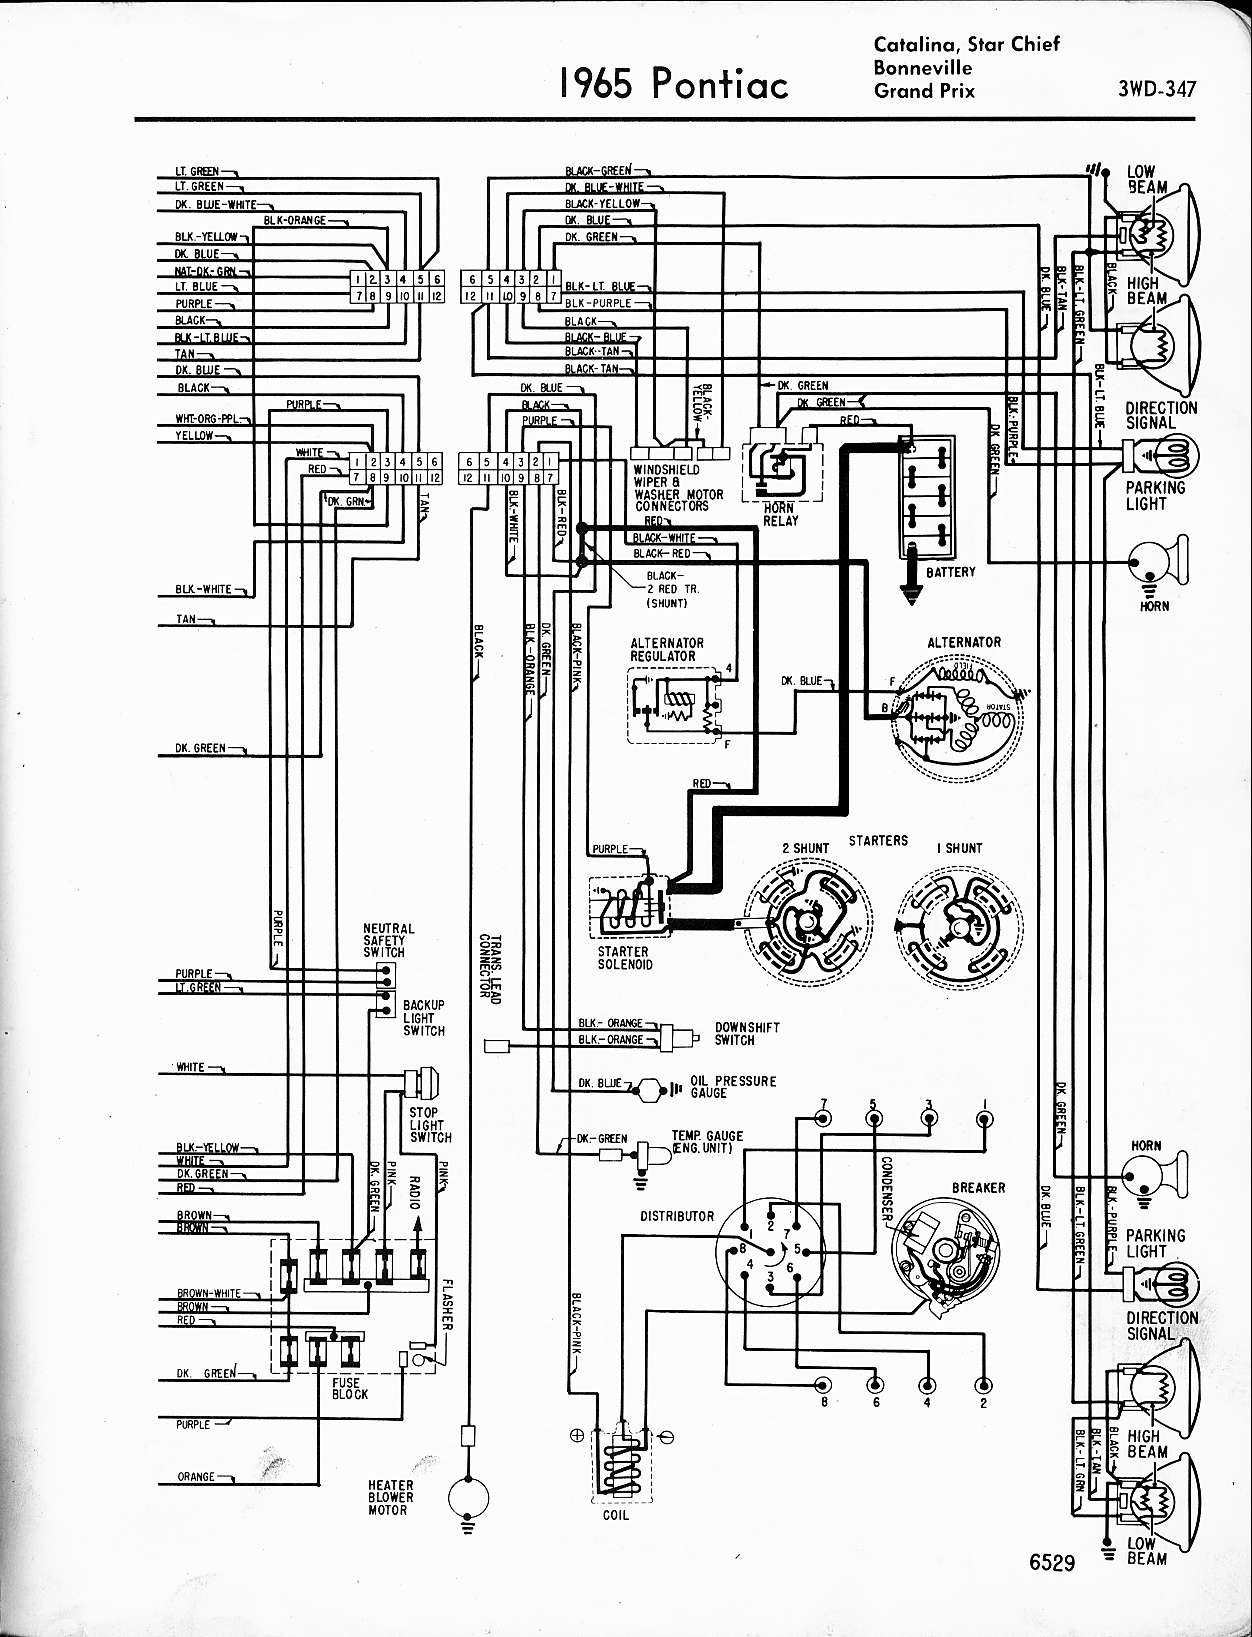 MWire5765 347 pontiac wiring diagrams pontiac grand prix wiring diagrams \u2022 free 1998 pontiac bonneville wiring diagram at bakdesigns.co